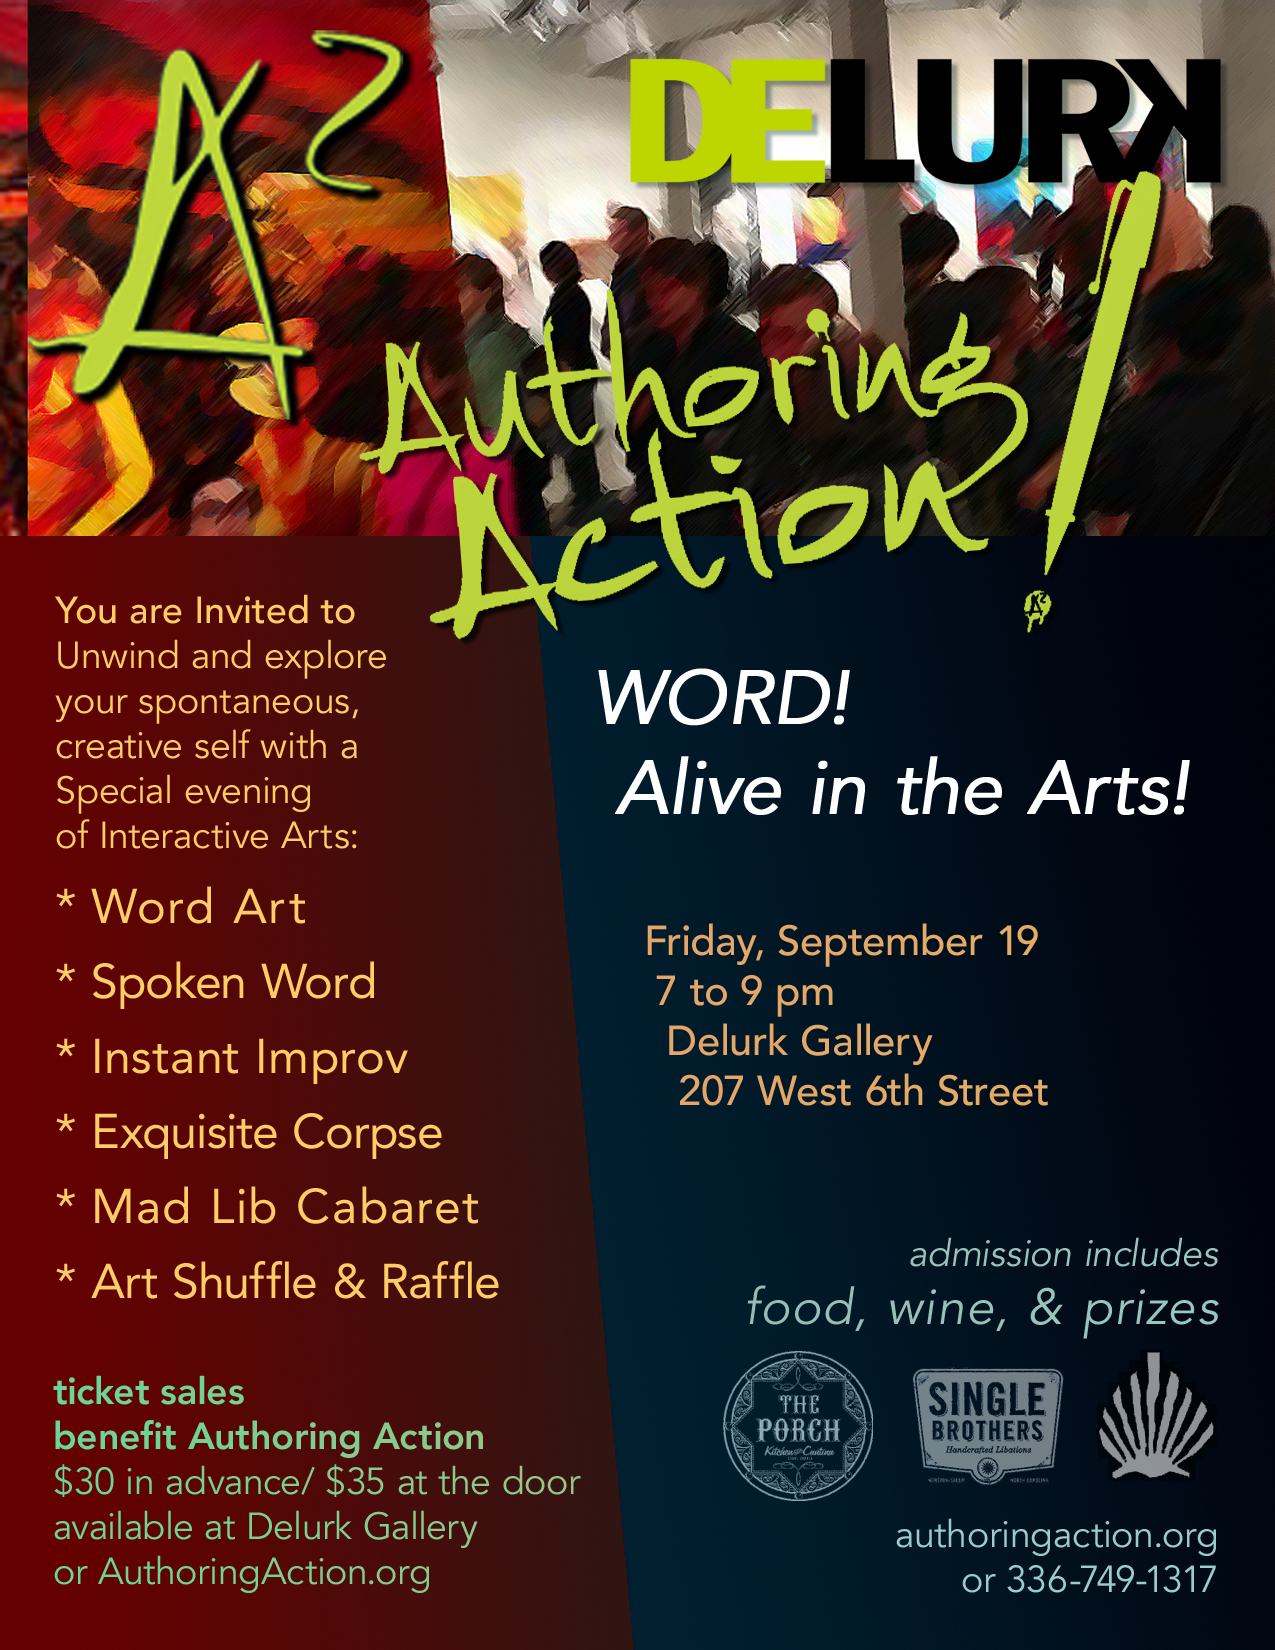 For more information email info@authoringaction.org, or call 336-749-1317.